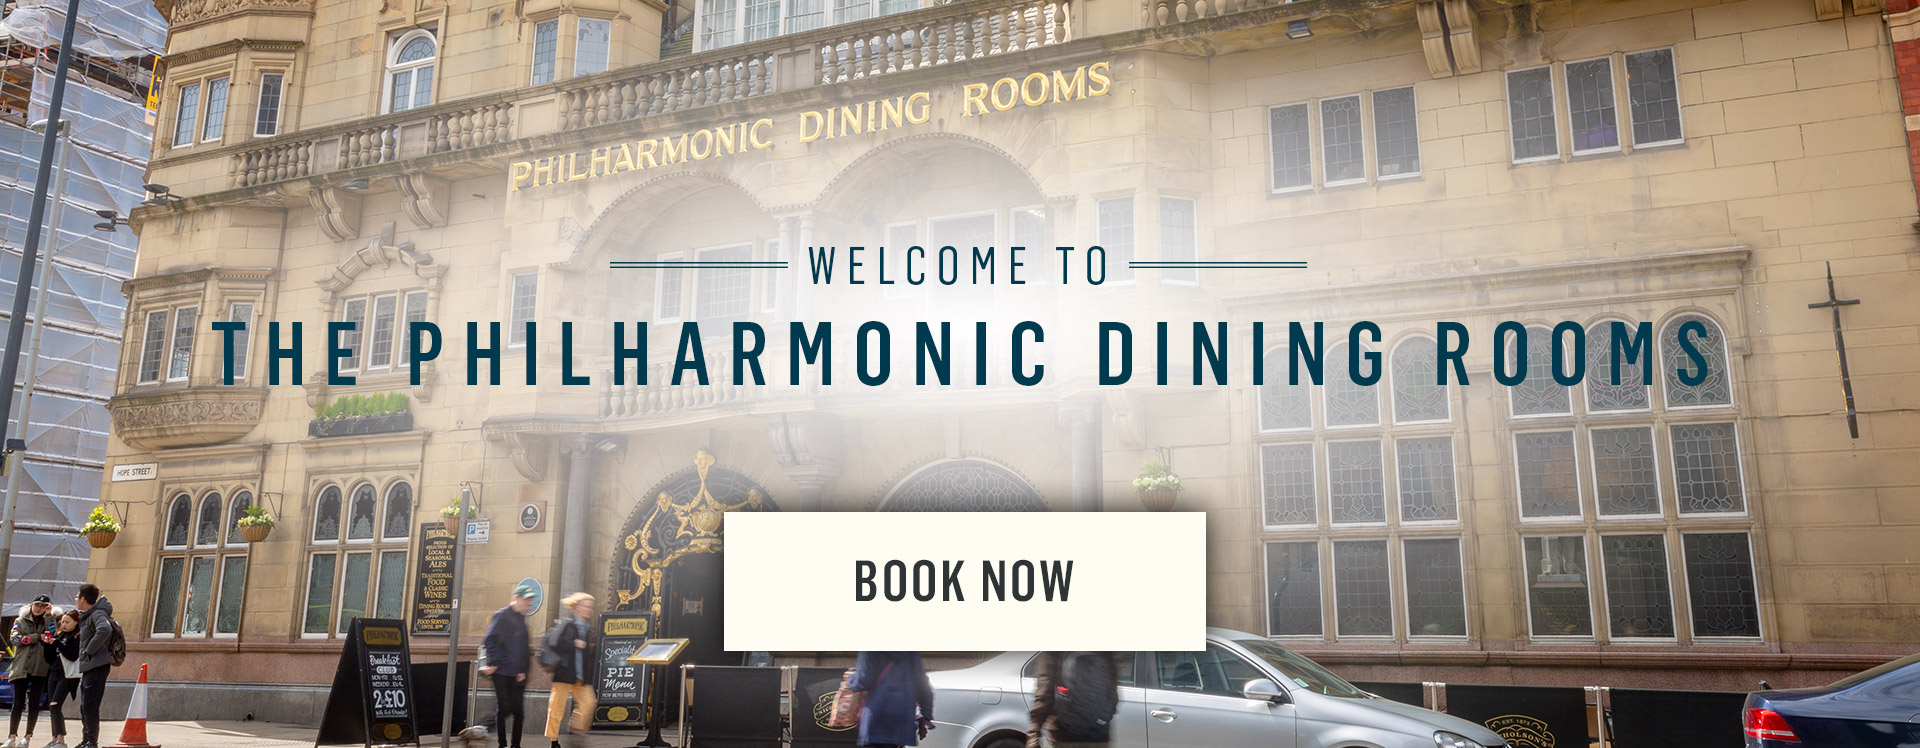 Welcome to The Philharmonic Dining Rooms - Book Now